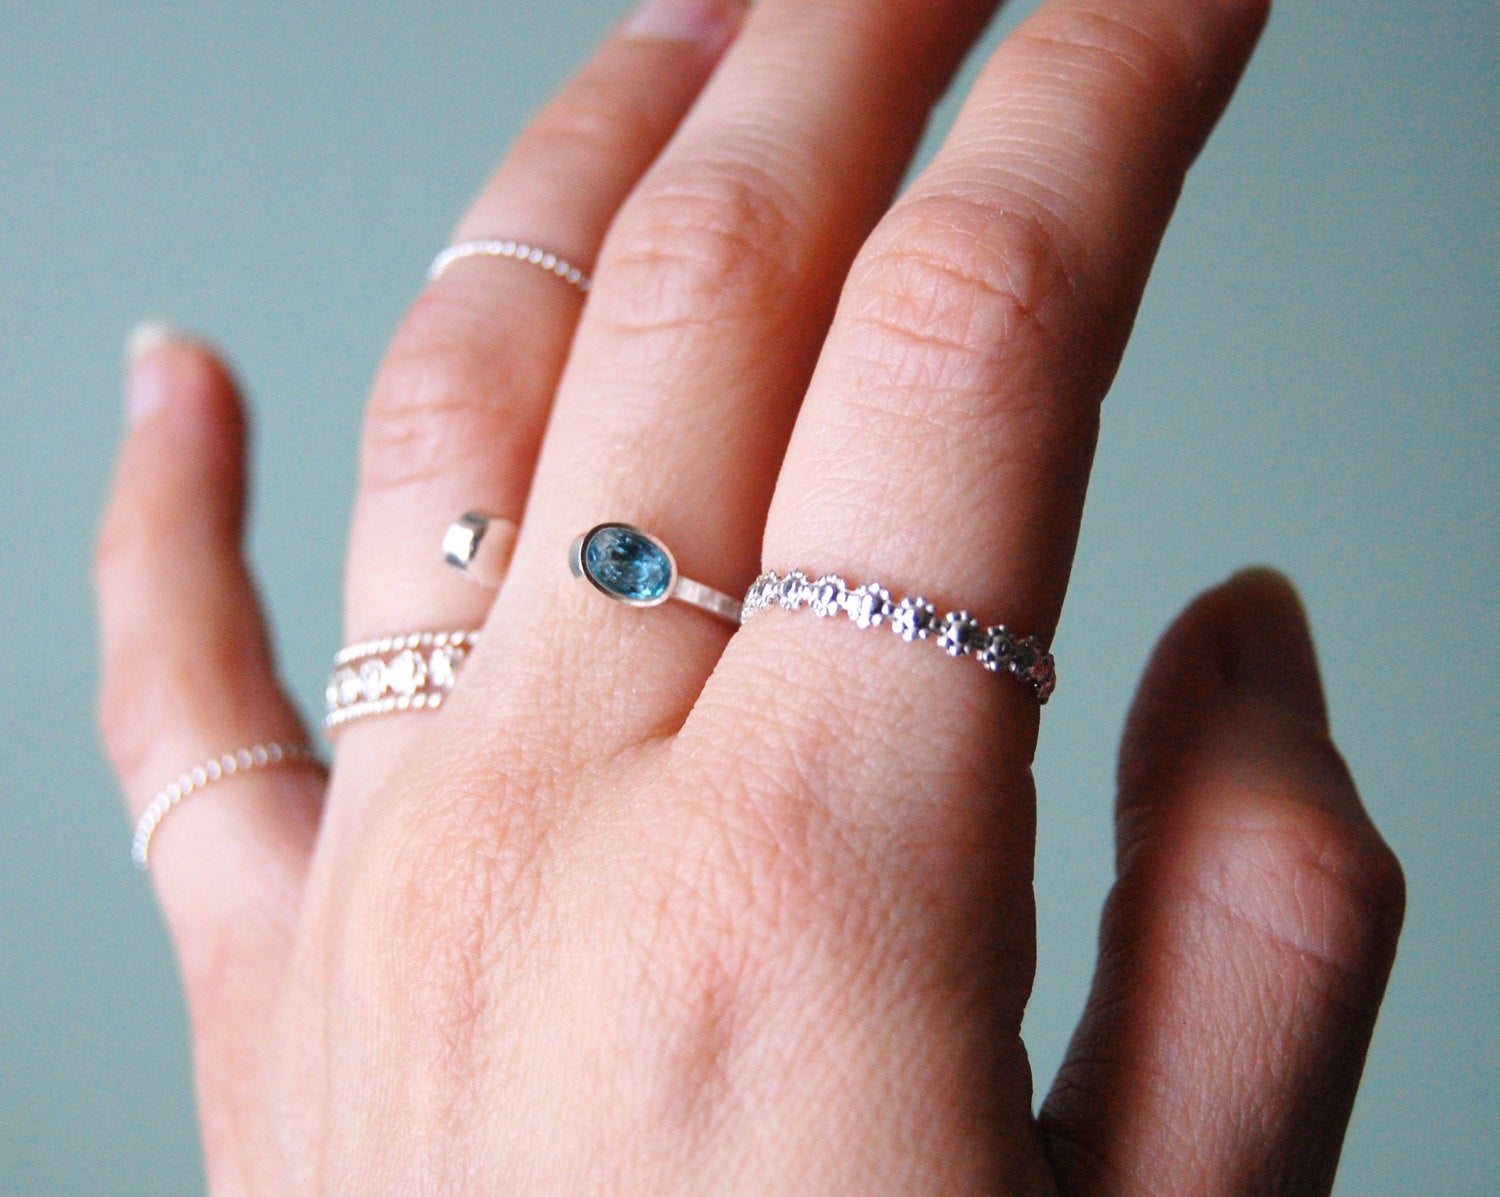 Sterling Silver Stacking or Knuckle Ring in Bright Silver or Oxidized Silver in Daisy Chain, Made to Fit